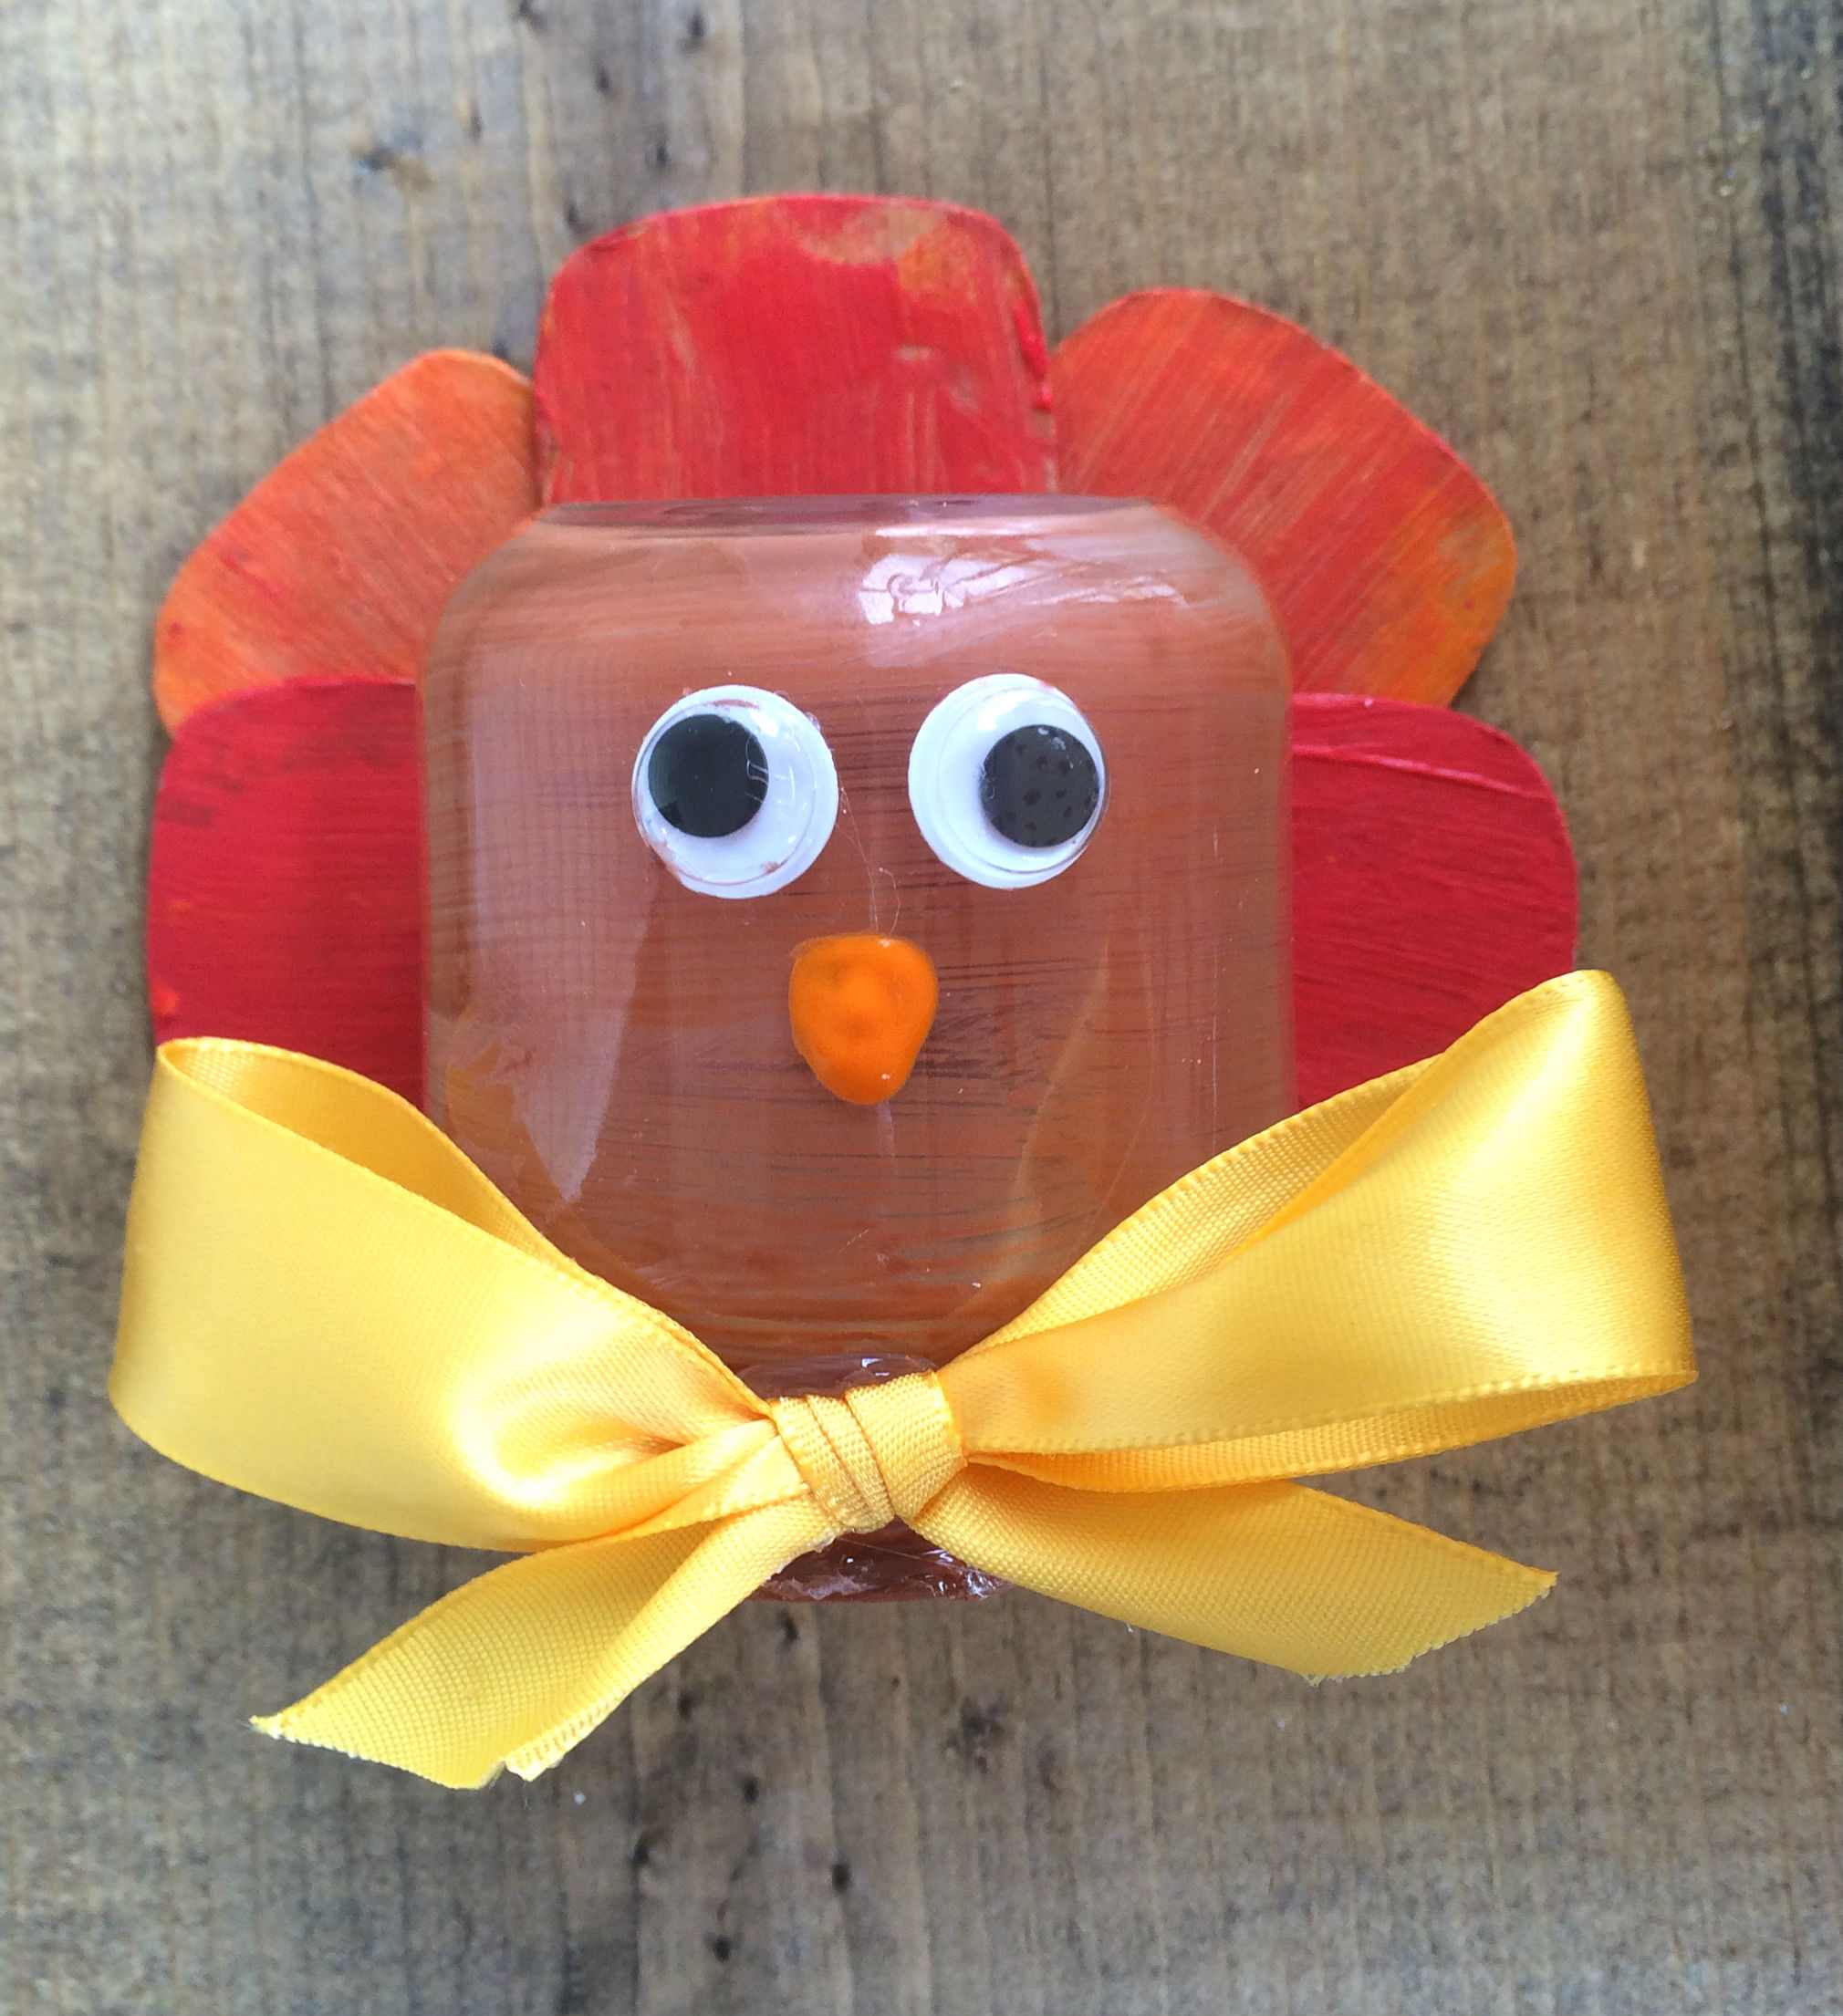 How To For Kids Fun Turkey Craft from Recycled Materials